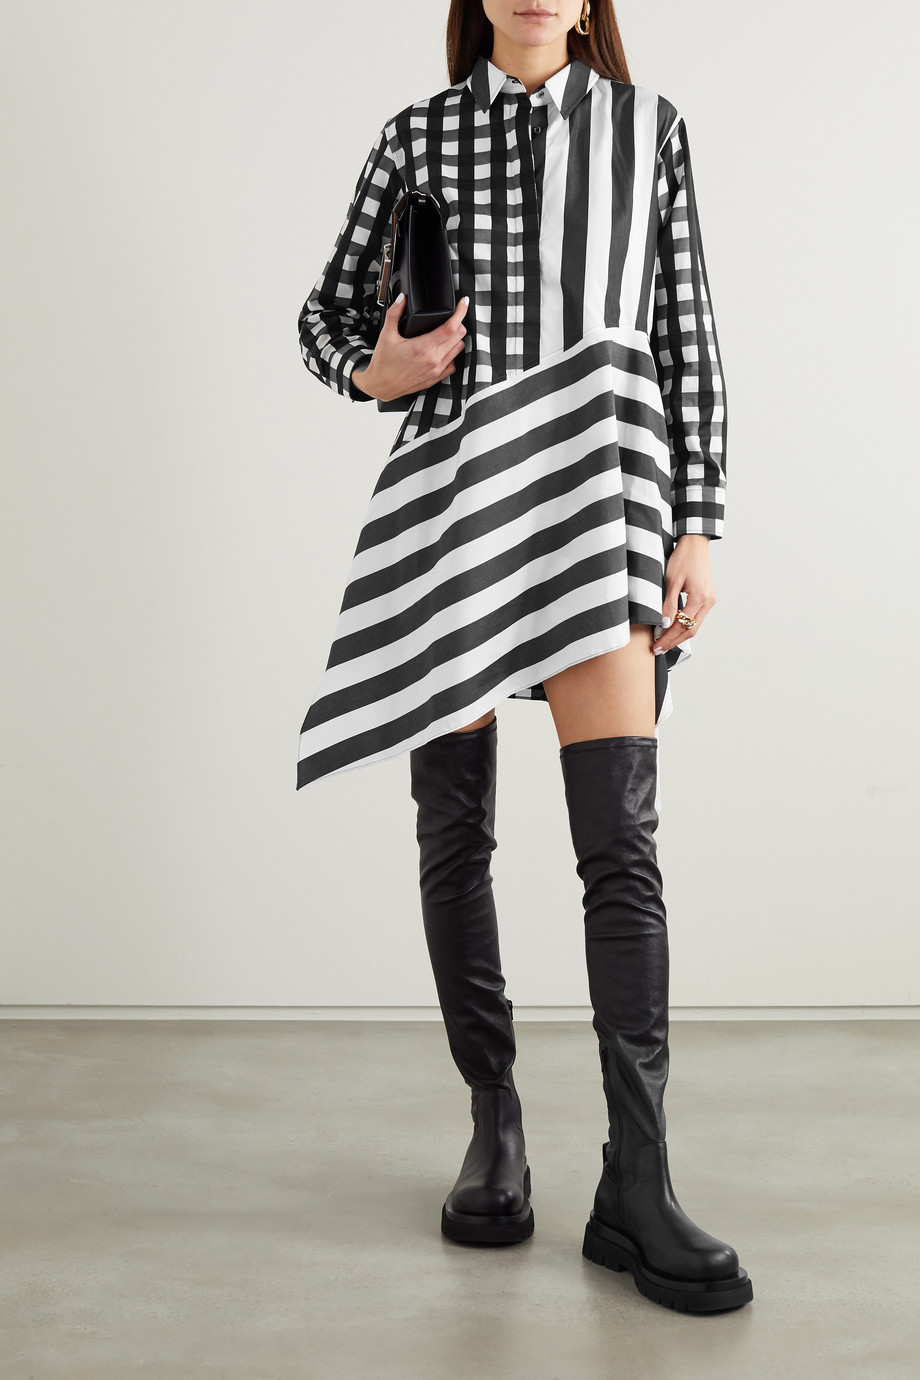 MARQUES' ALMEIDA + NET SUSTAIN ReM'Ade asymmetric printed cotton-poplin shirt dress